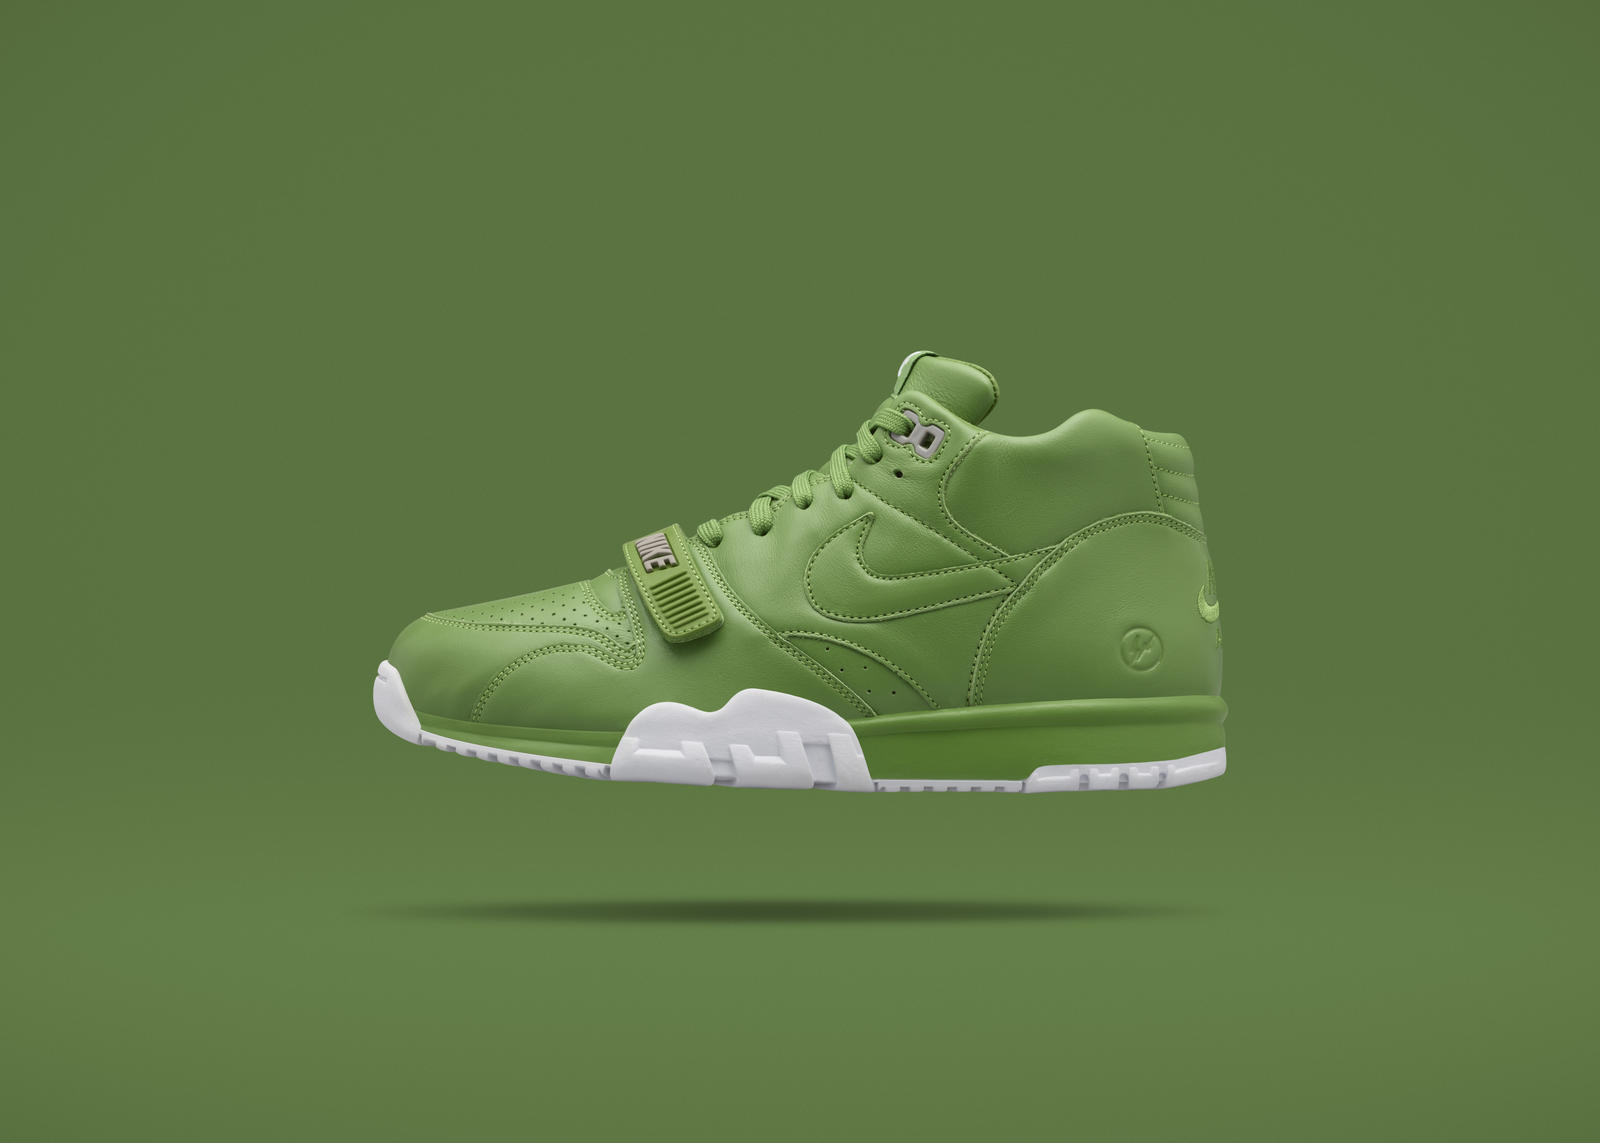 Nikecourt air trainer 1 x fragment 5 rectangle 1600